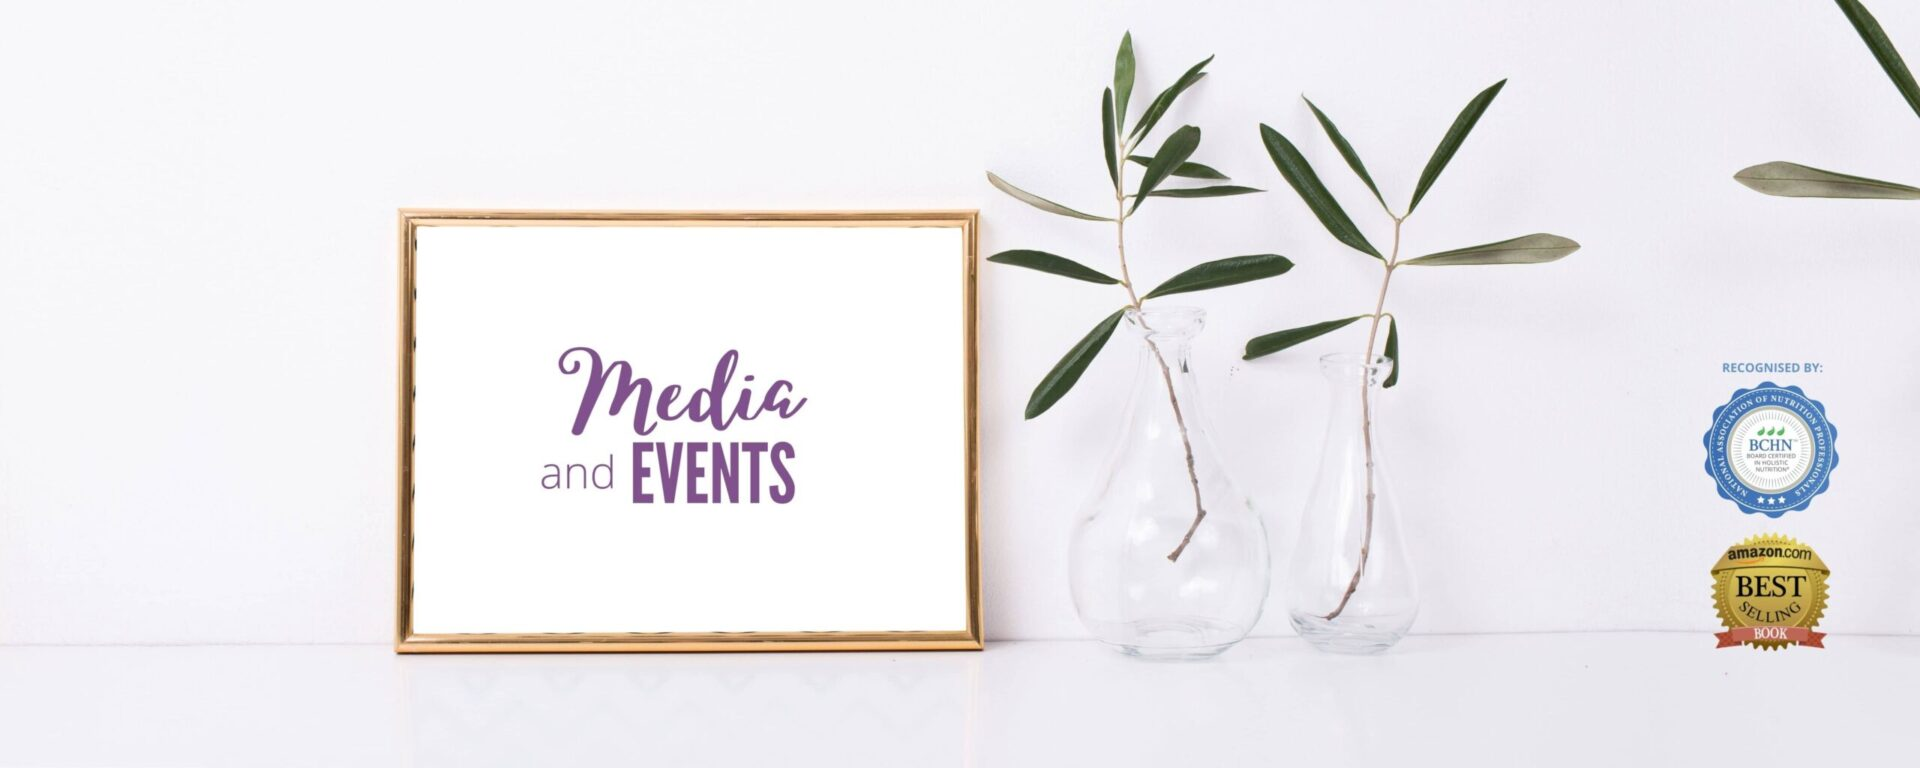 Media and Events